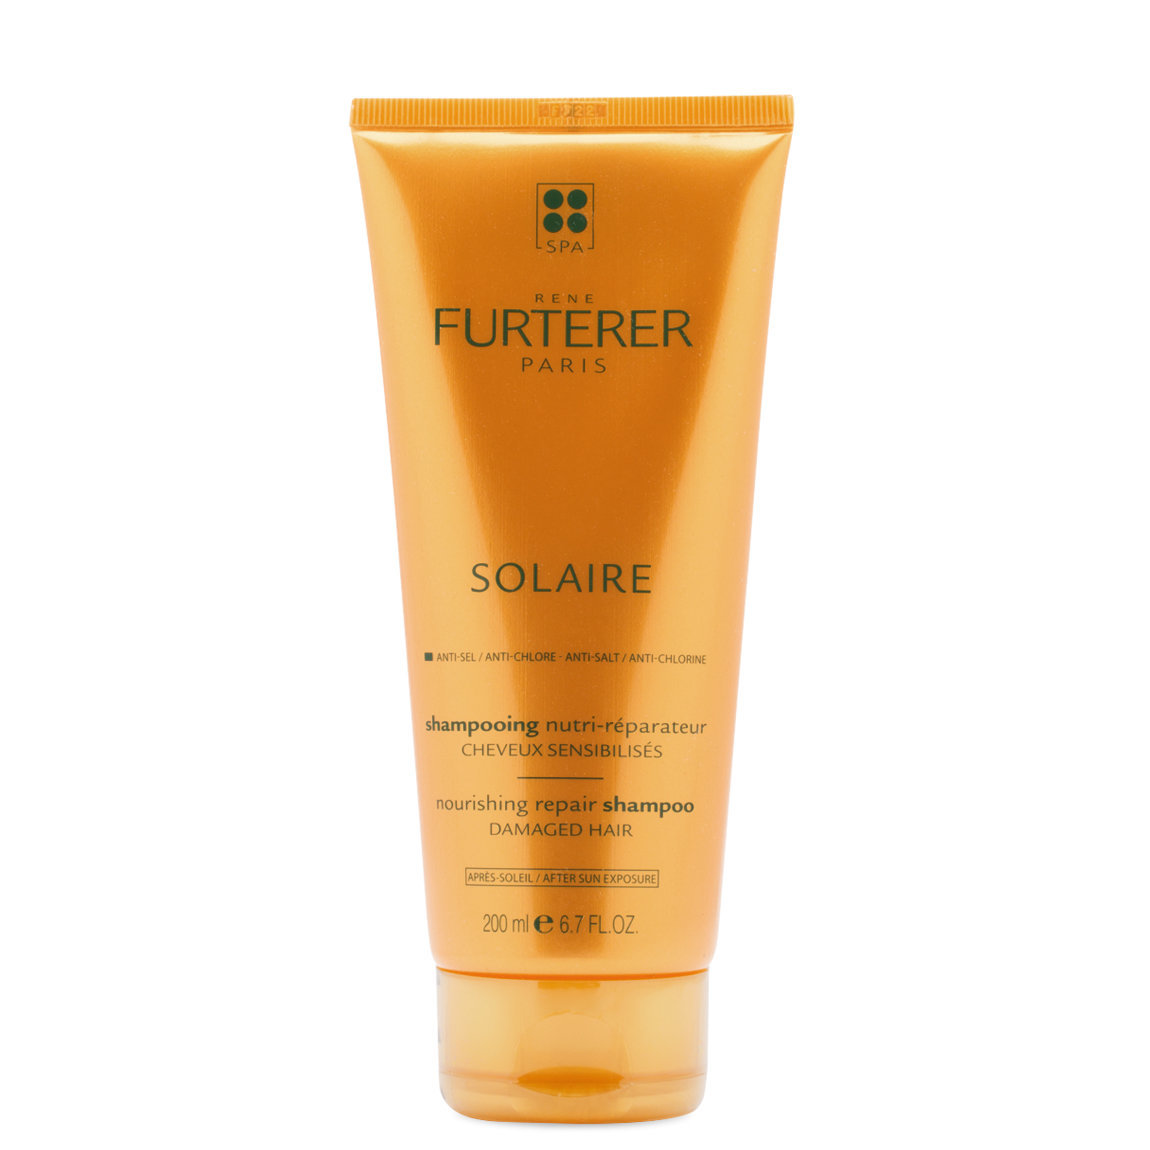 Rene Furterer Solaire Nourishing Repair Shampoo product swatch.